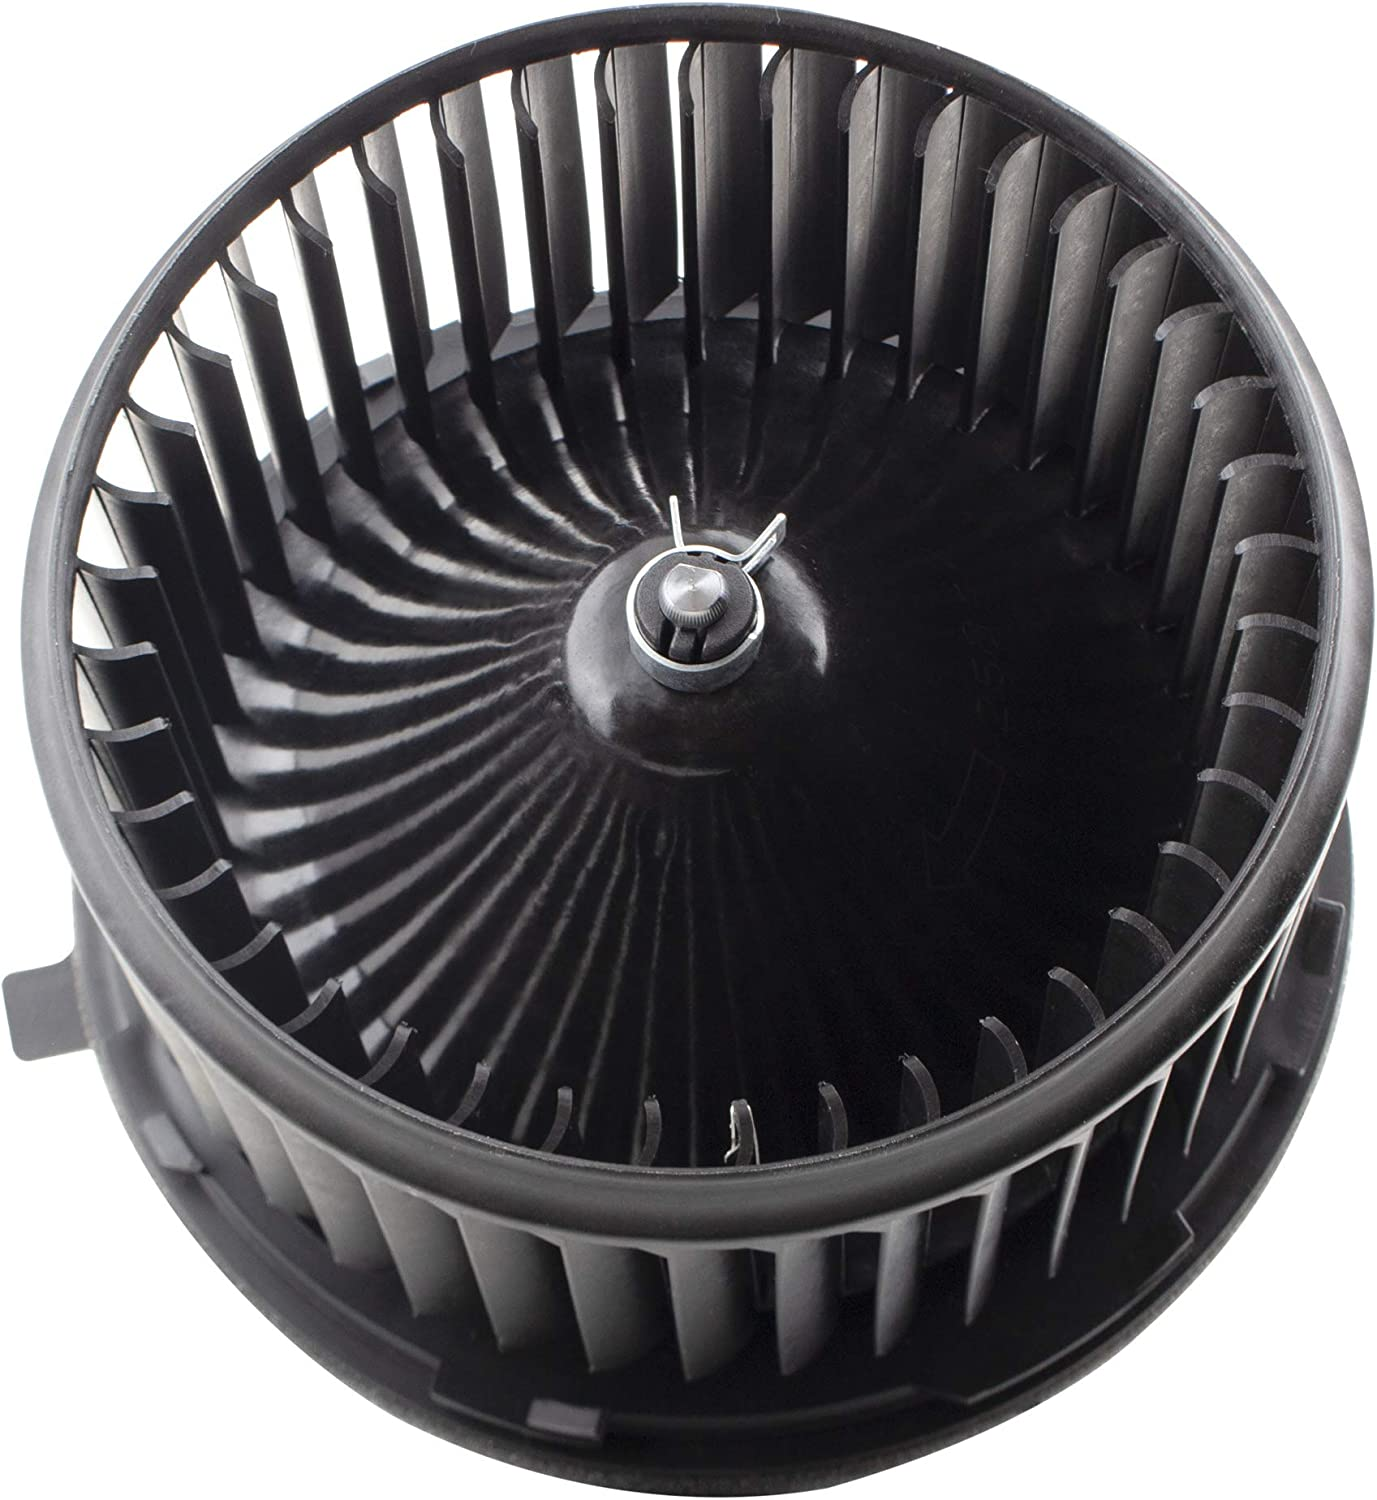 MYSMOT AC Blower Max 40% OFF Motor 5 popular with Compatible Chevy GMC Fan Cad